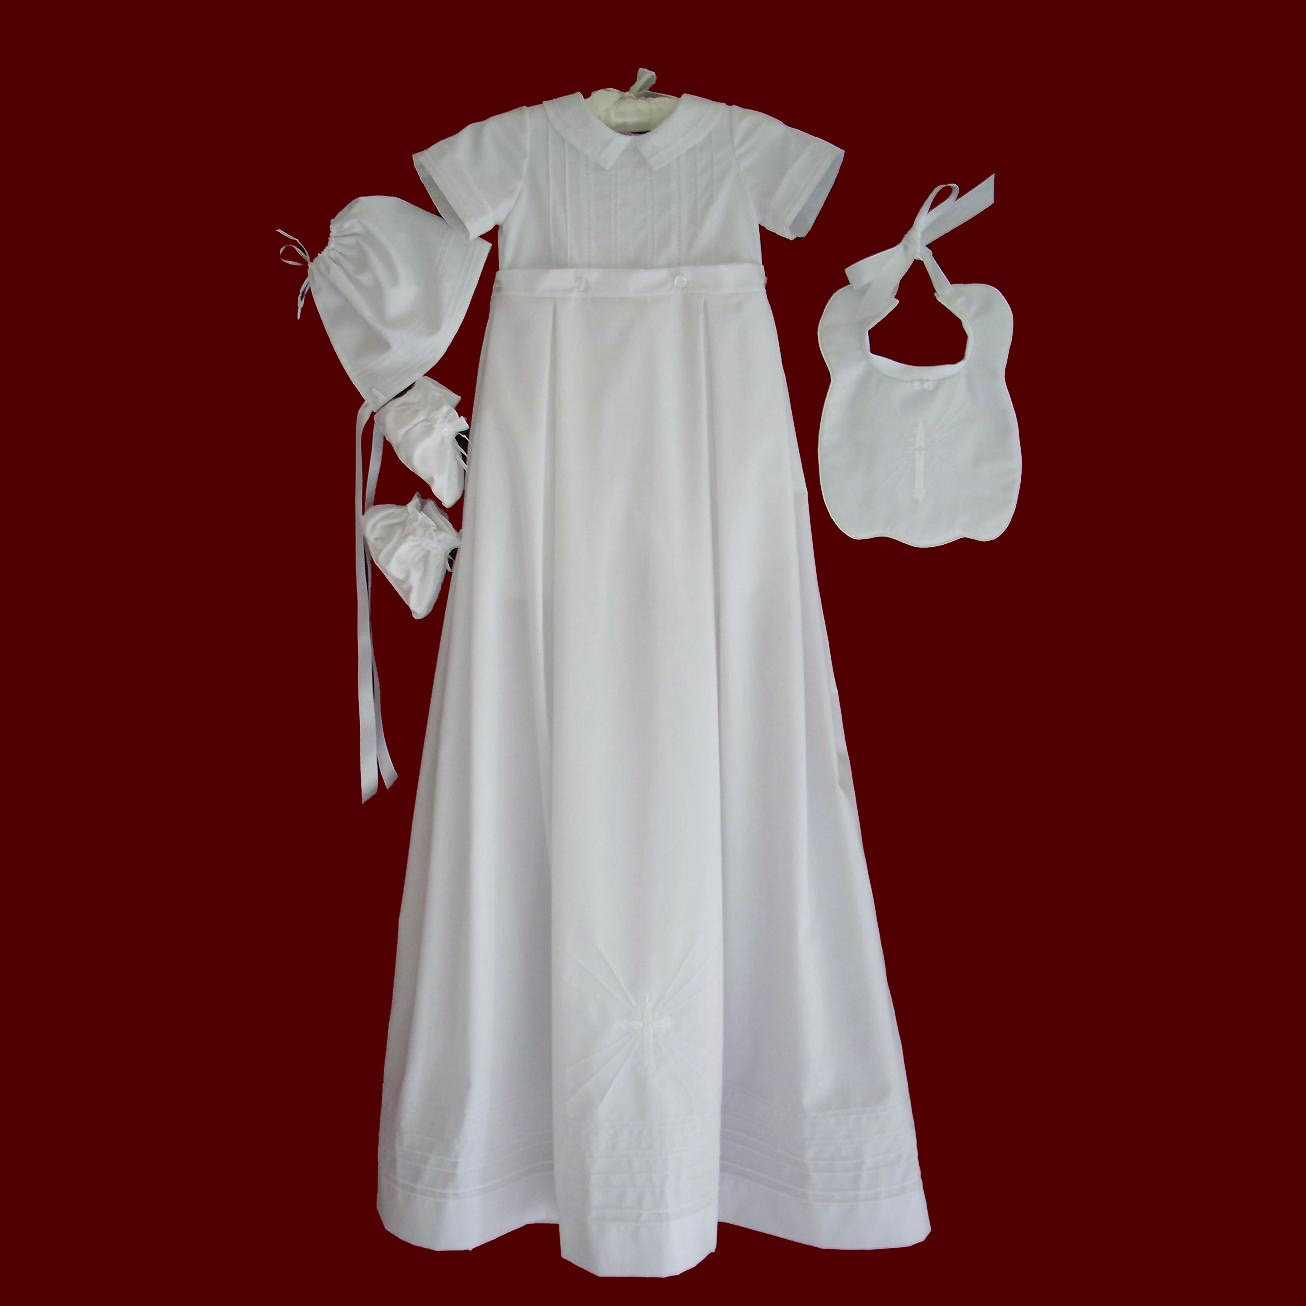 Boys Cotton Christening Romper With Detachable Gown & Accessories